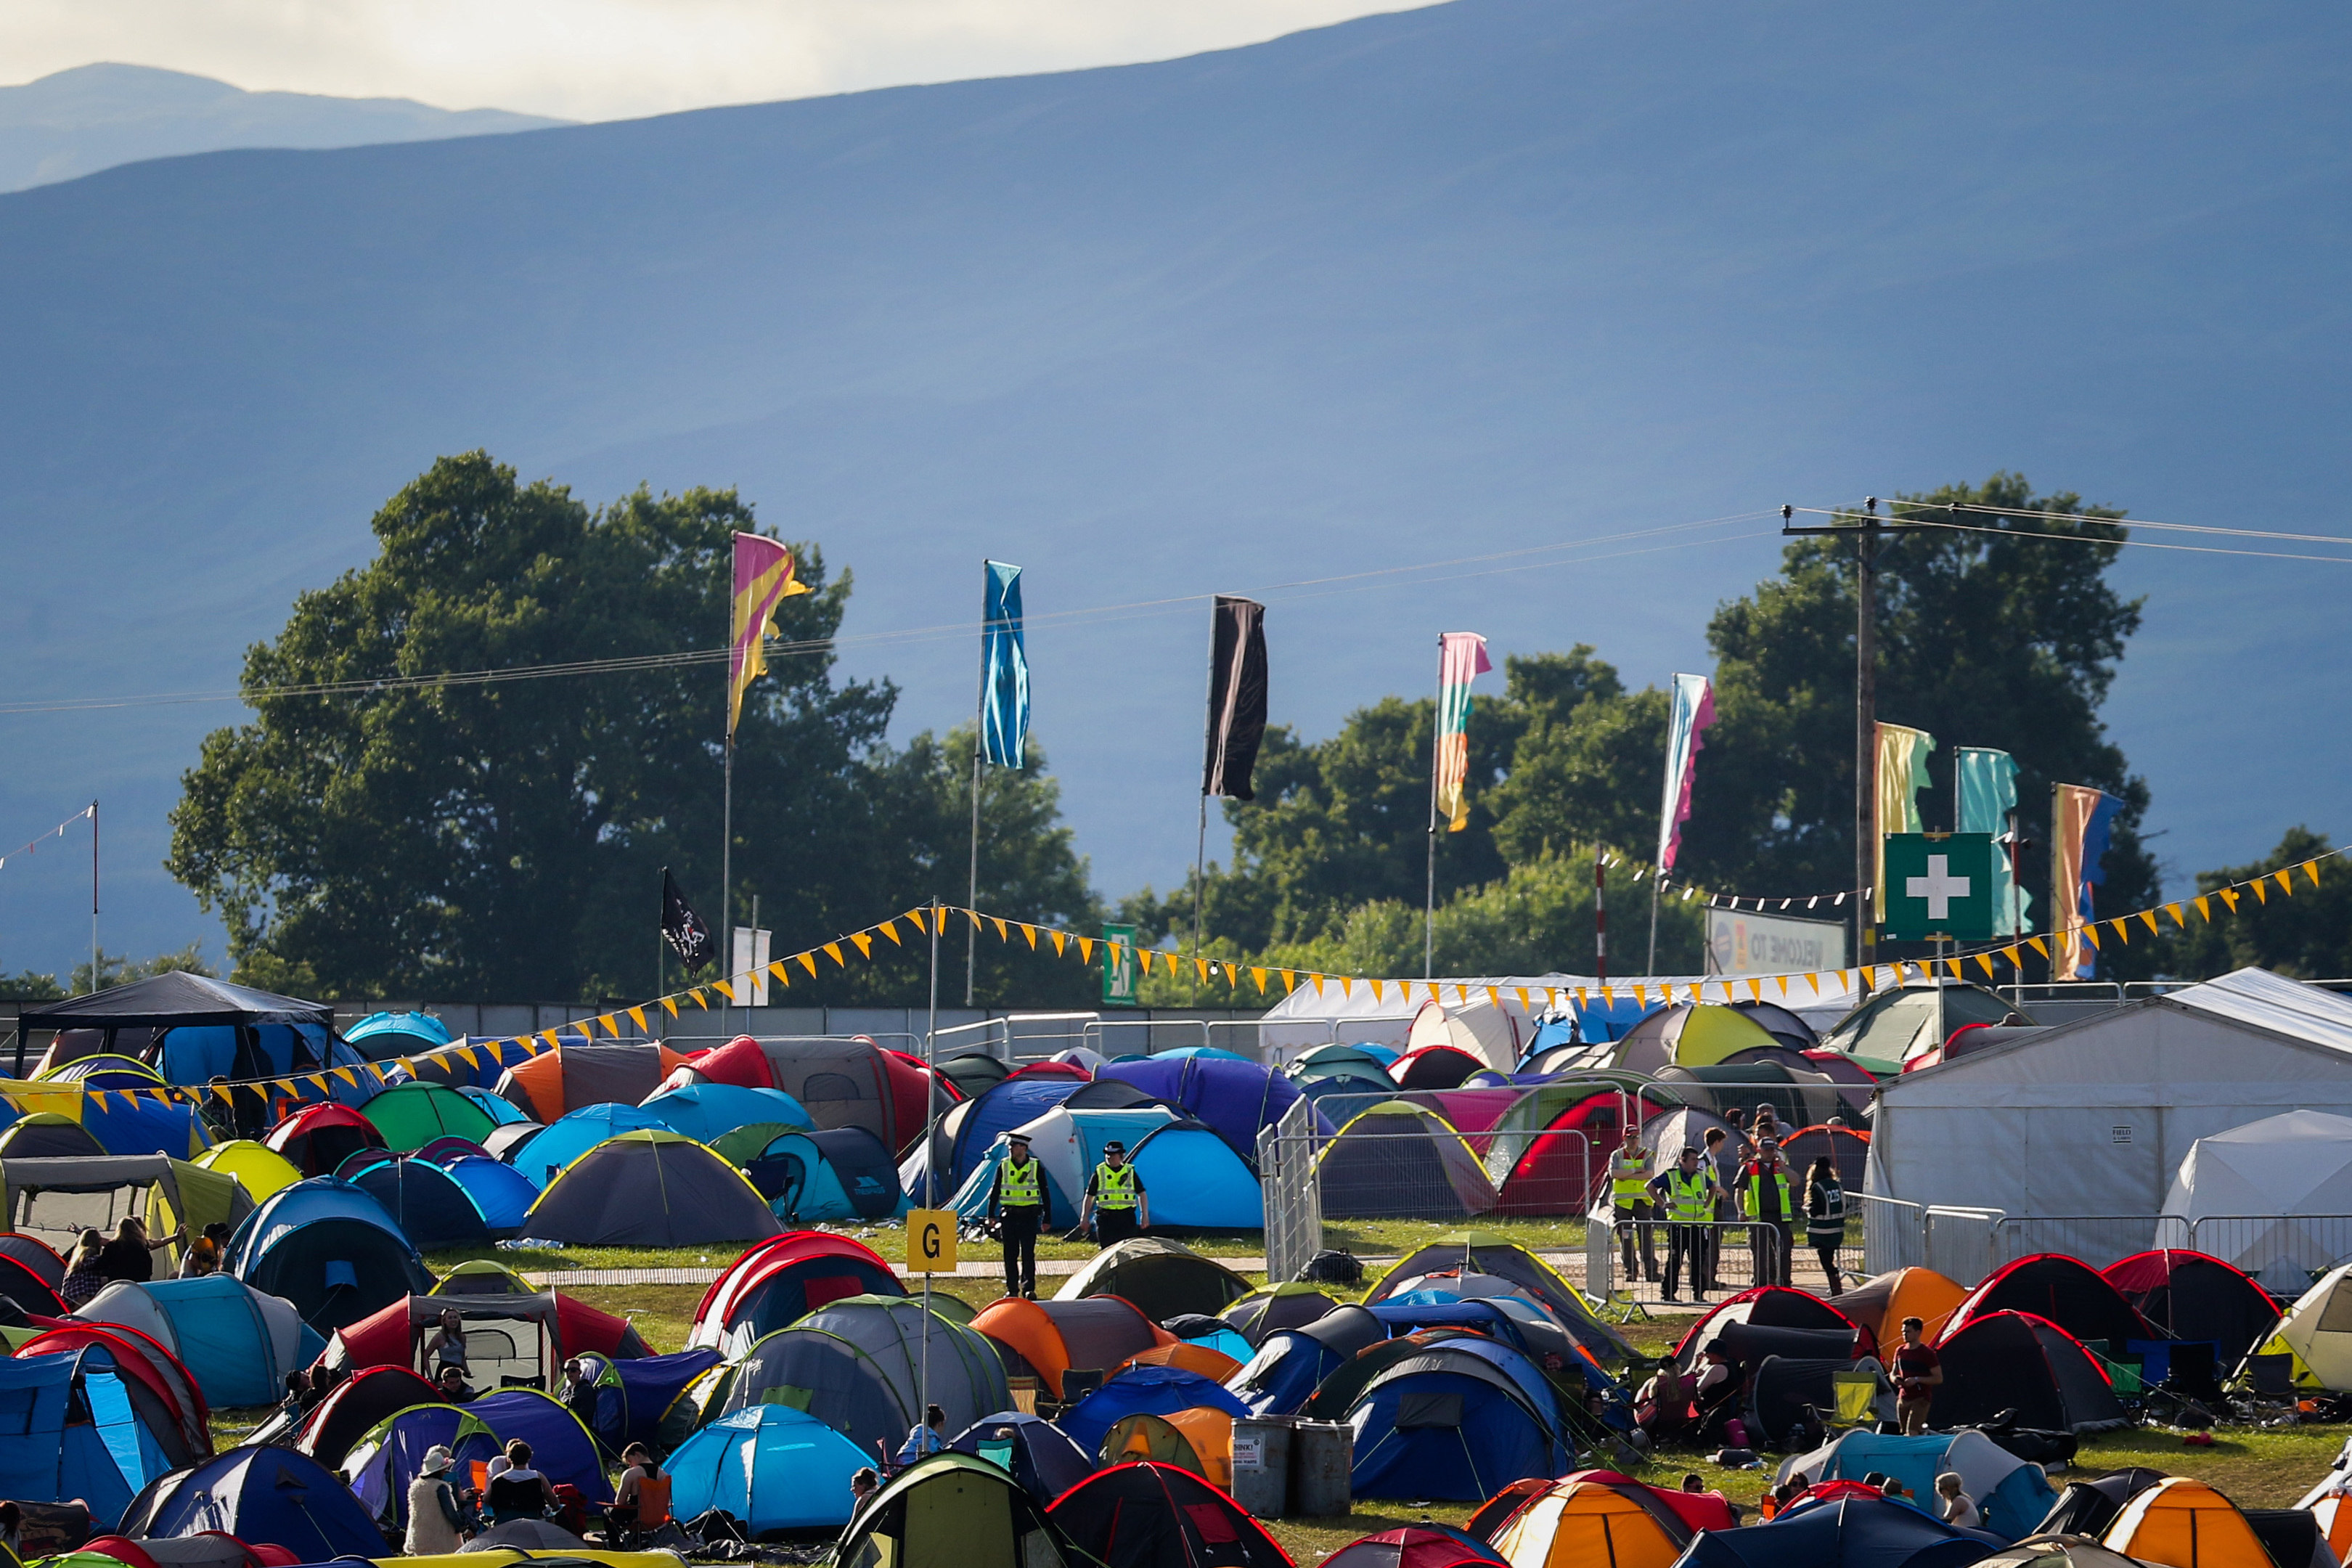 T in the Park (DC Thomson)